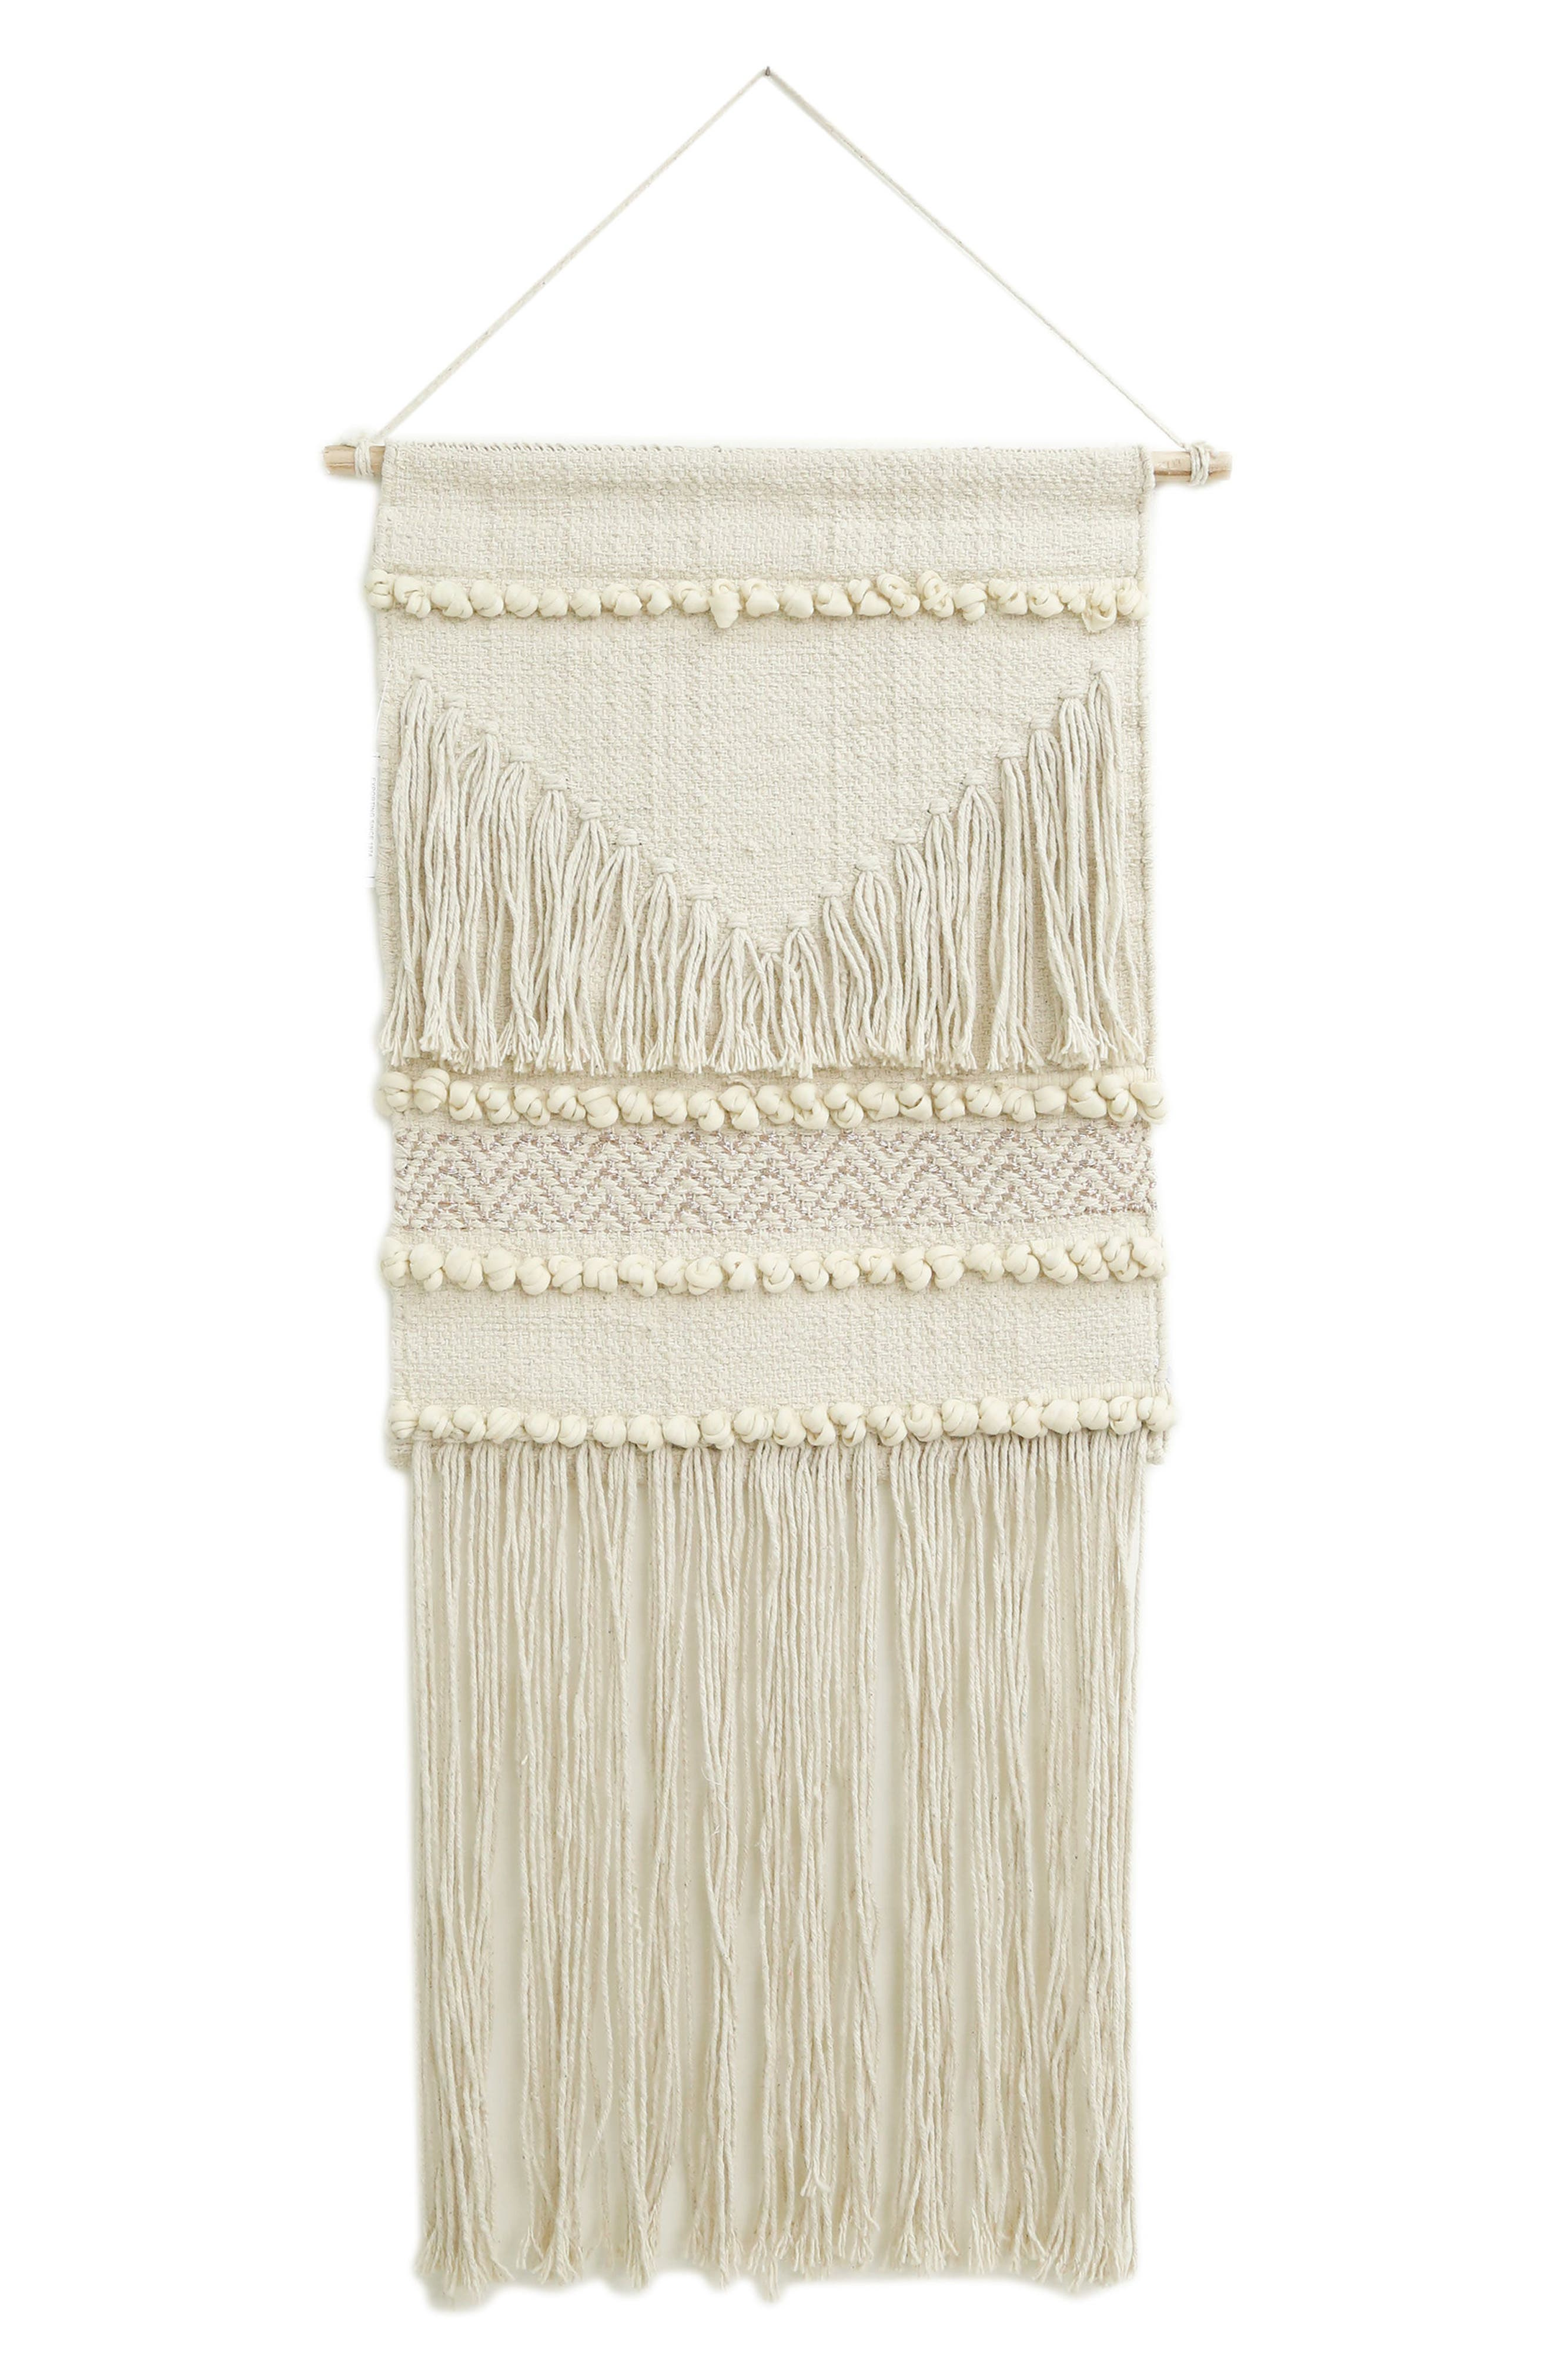 Aya Handwoven Wall Hanging,                         Main,                         color, Ivory/Gold